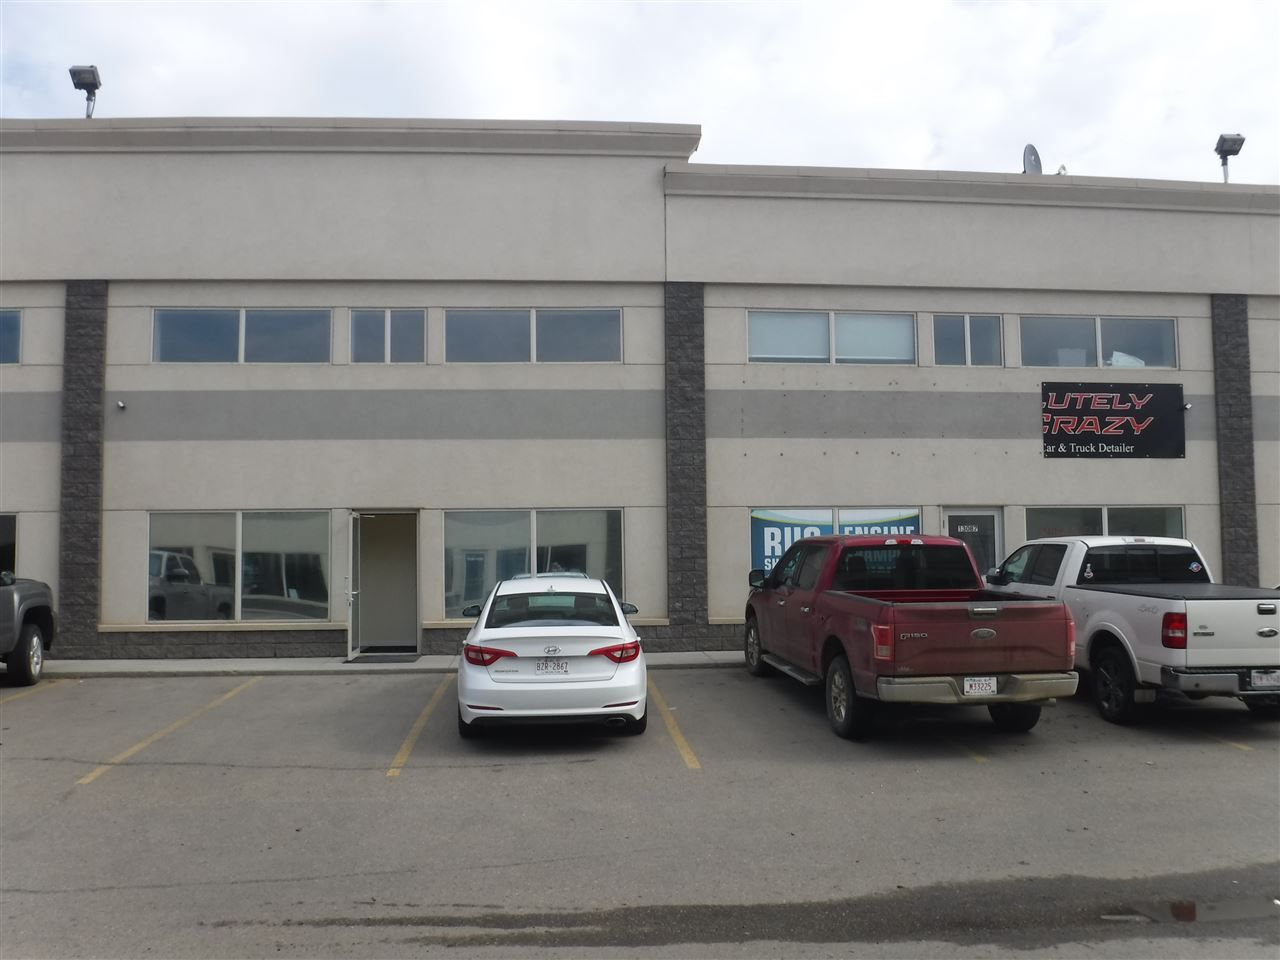 Main Photo: 13085 156st in Edmonton: Zone 40 Industrial for sale : MLS®# E4126143